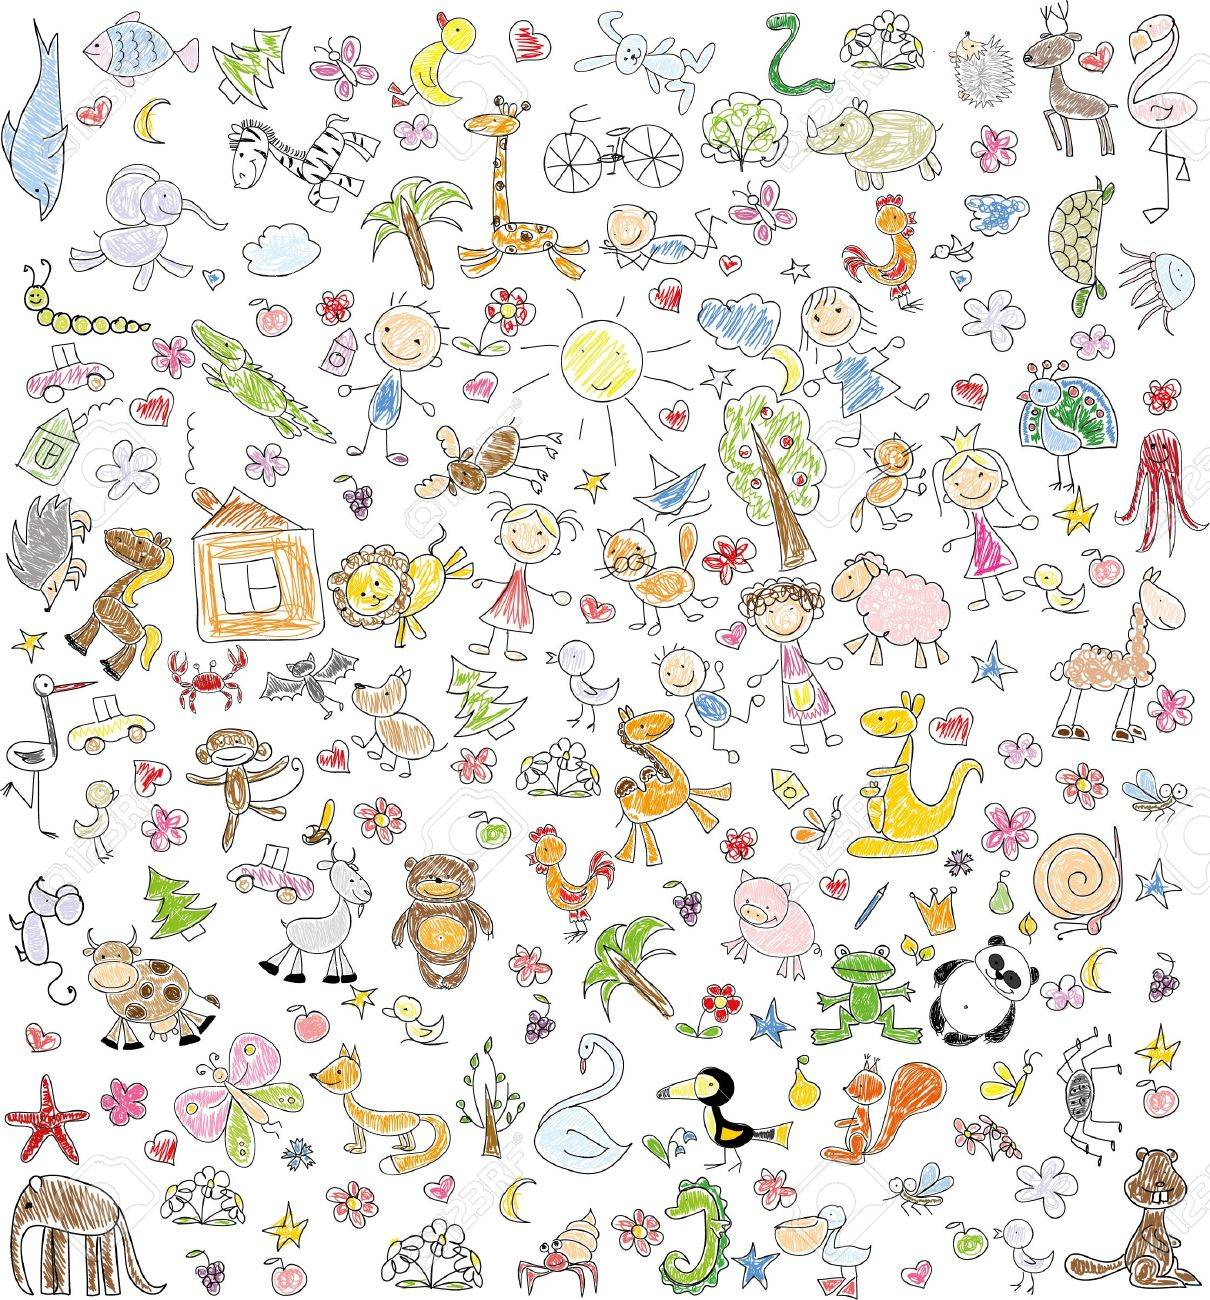 Children's drawings of doodle family, animals, people - 47853635